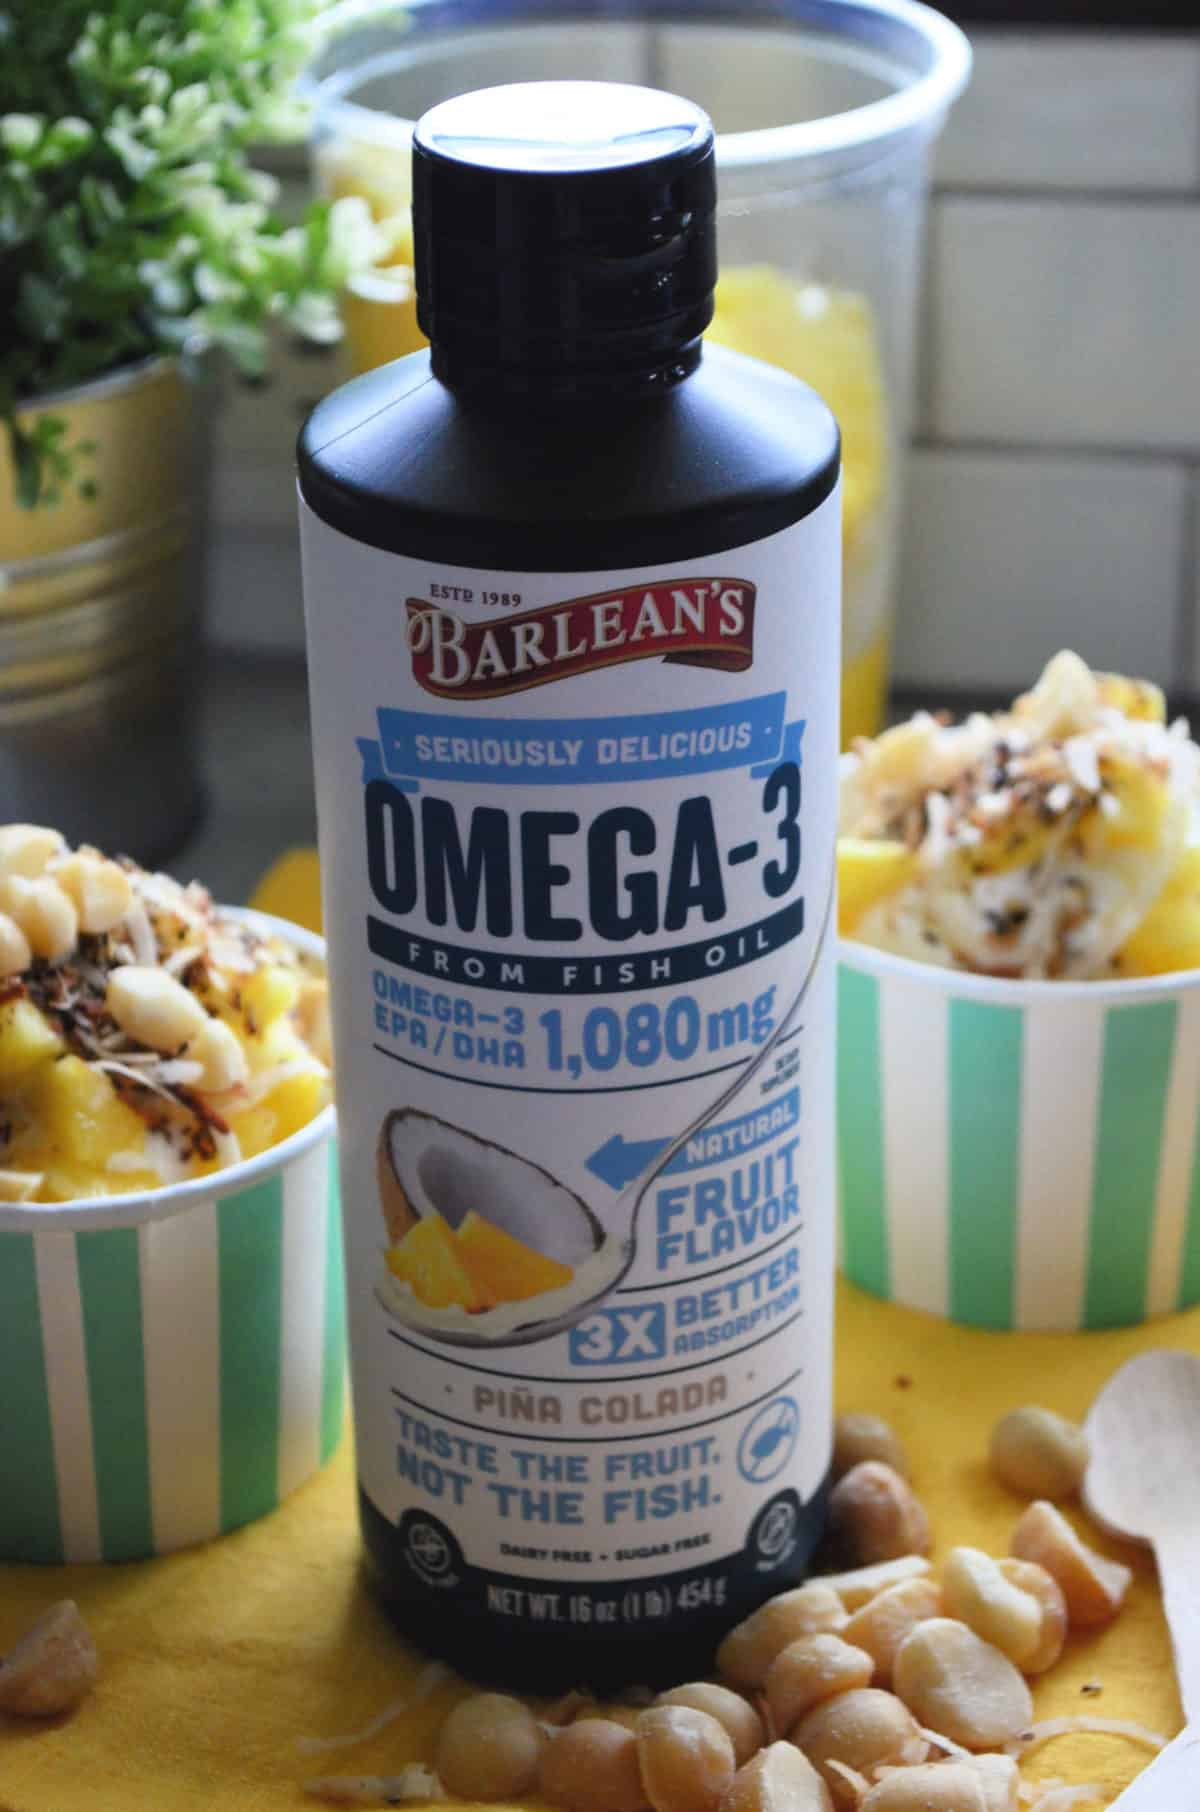 Seriously Delicious™ Omega-3 Fish Oil Piña Colada flavor in a bottle.